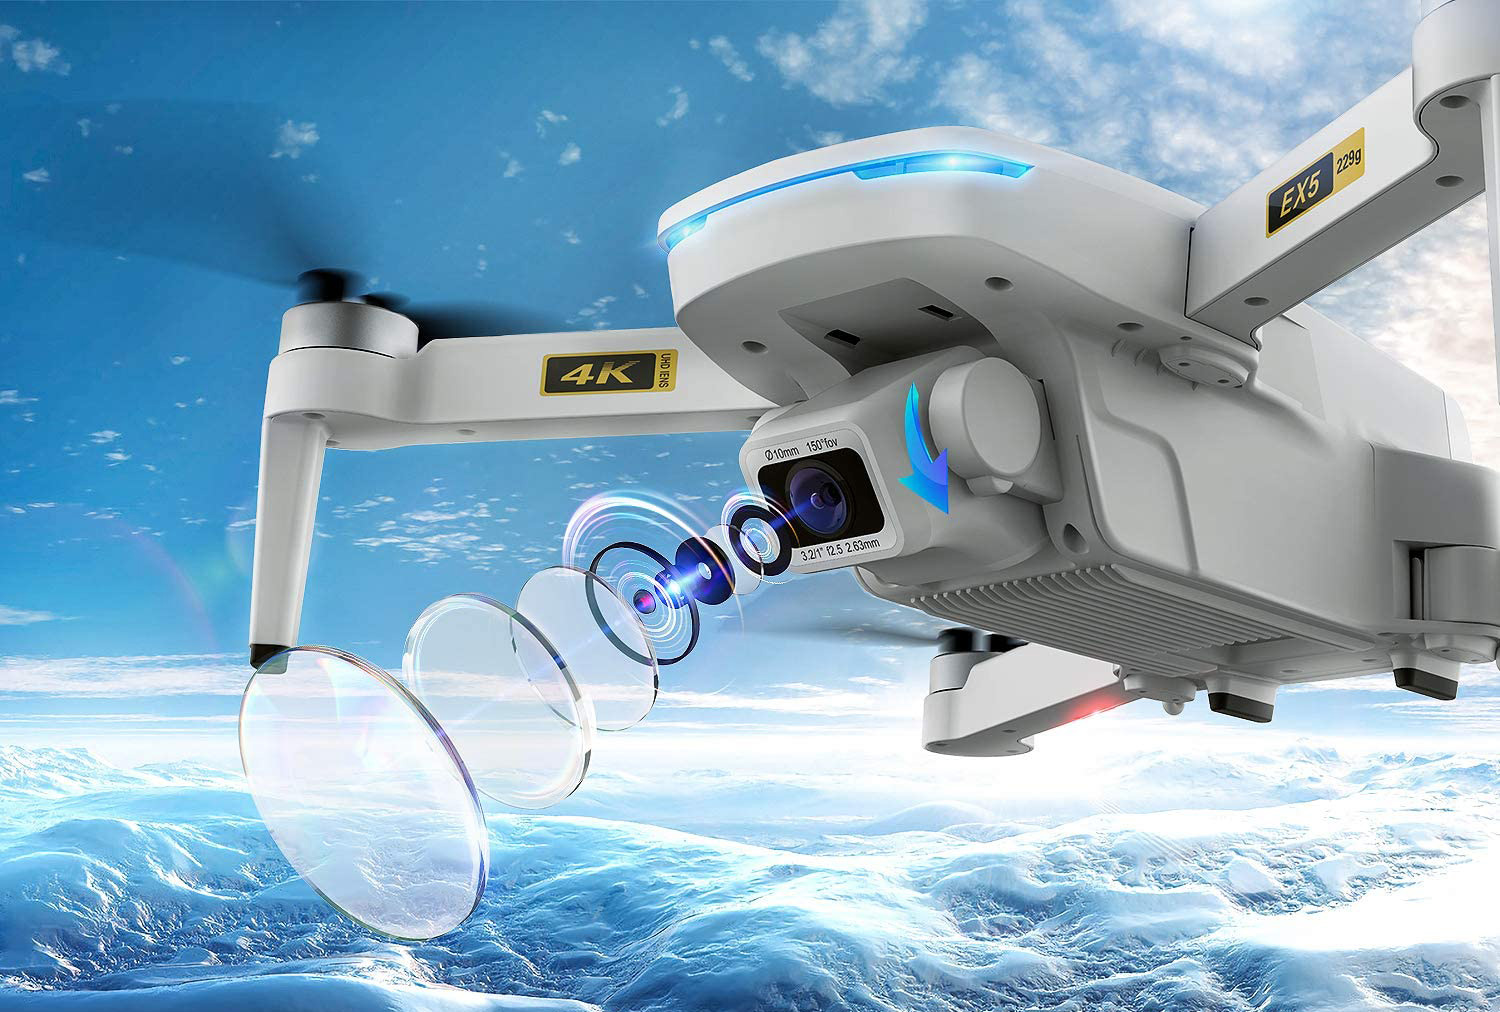 Get at a $190 4K camera drone for just $89.99 thanks to a huge $100 Amazon coupon thumbnail